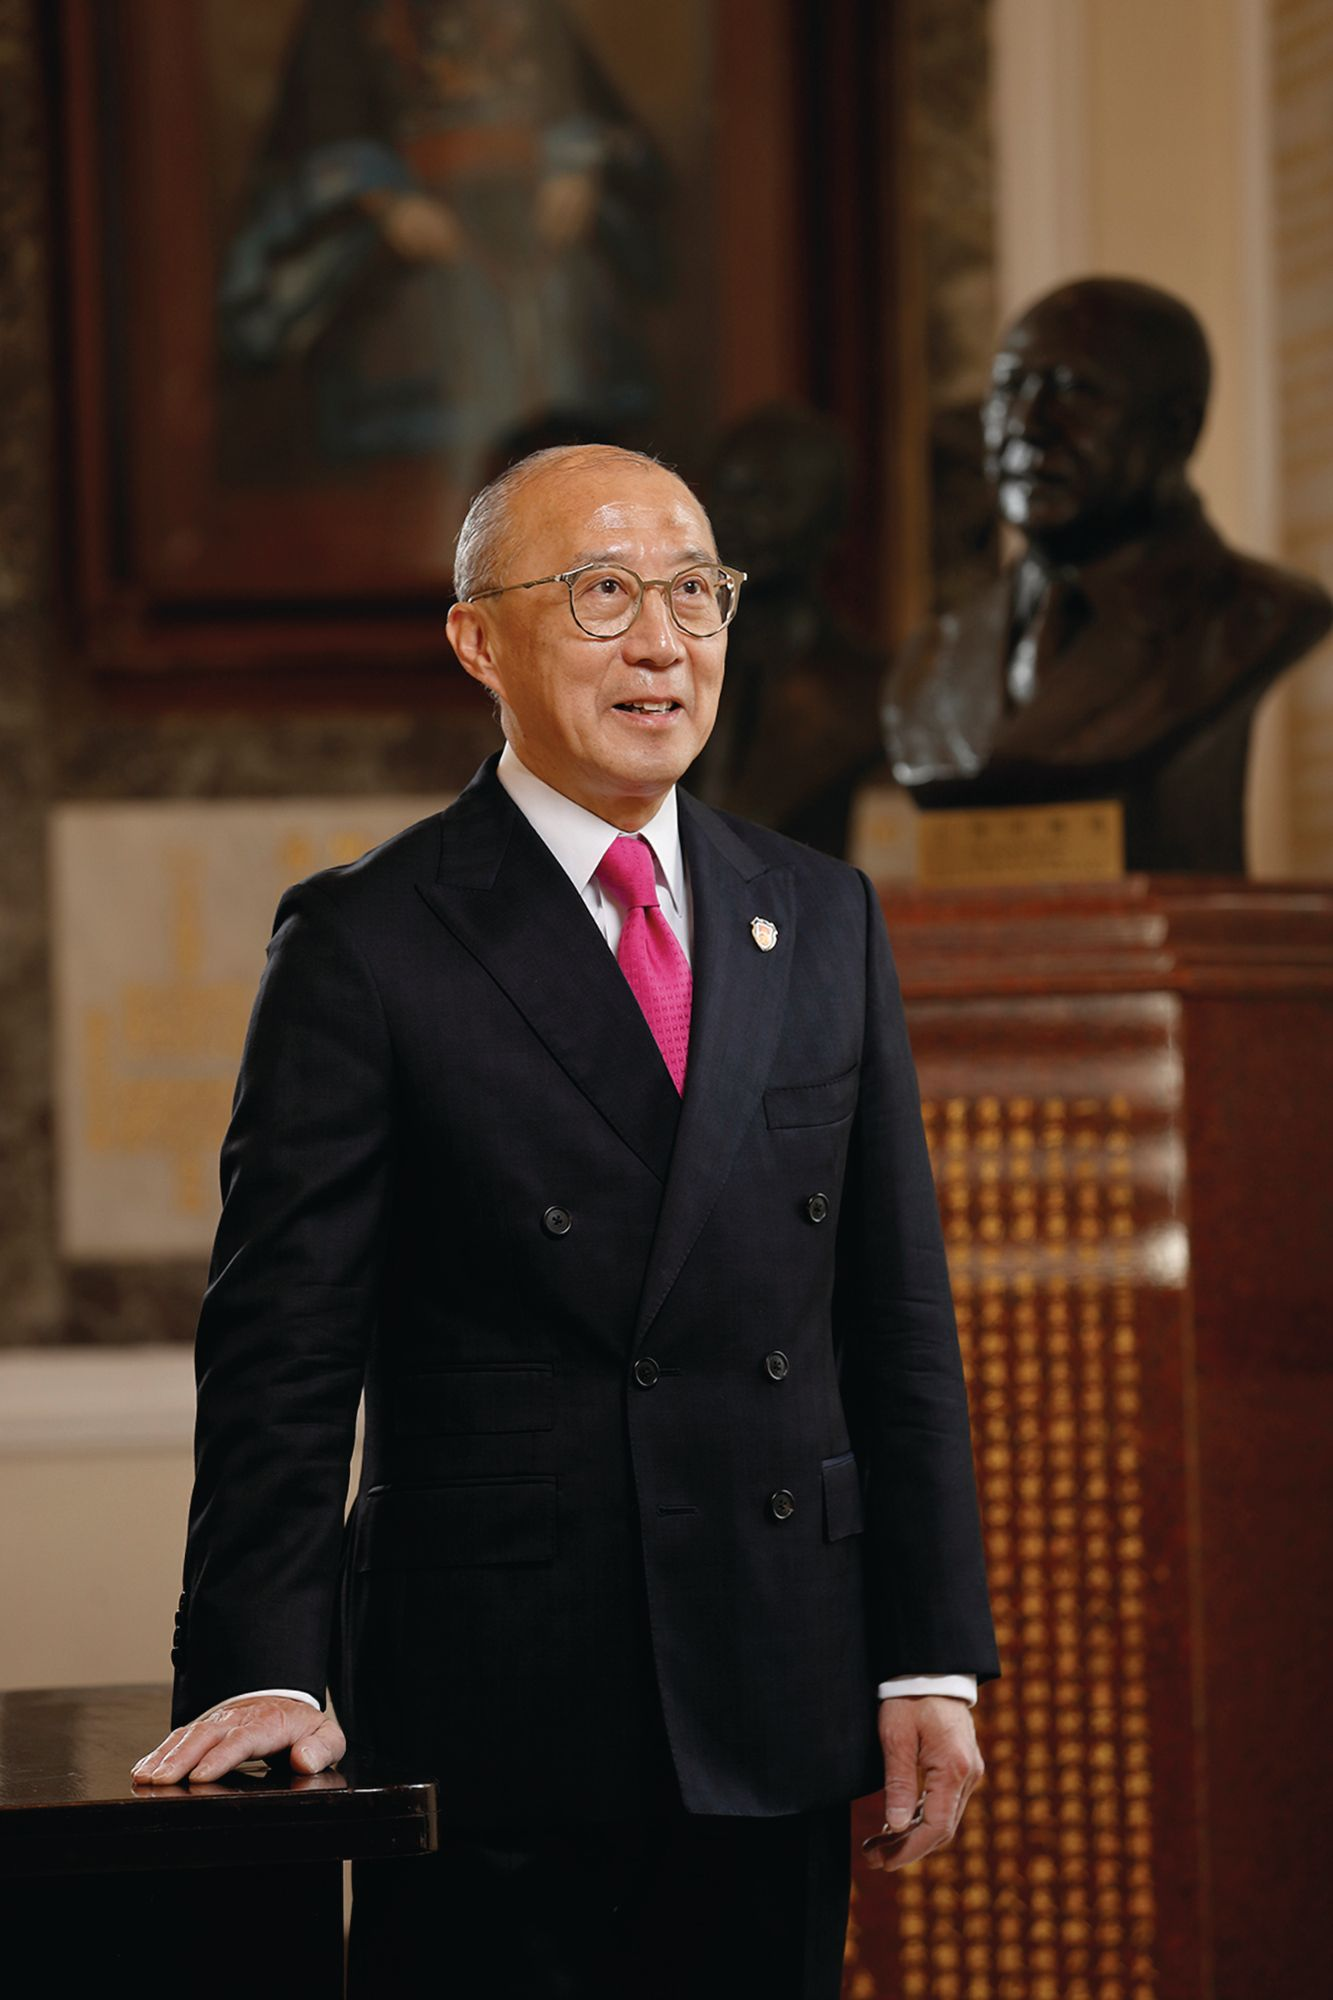 How Po Leung Kuk's Chairman Ma Ching-Nam Is Leading The Charity In New Directions